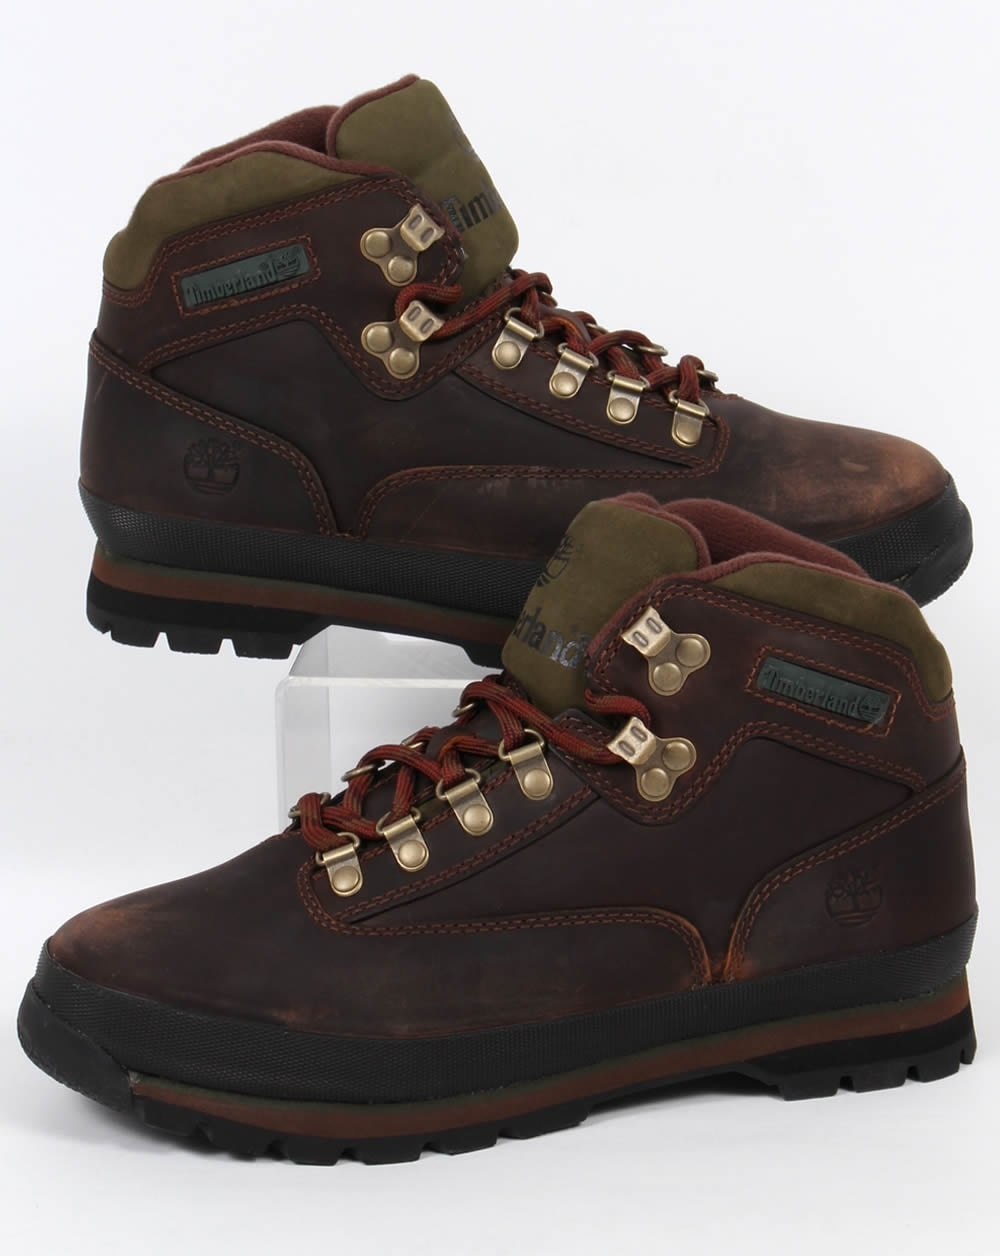 timberland euro hiker boots brown smooth